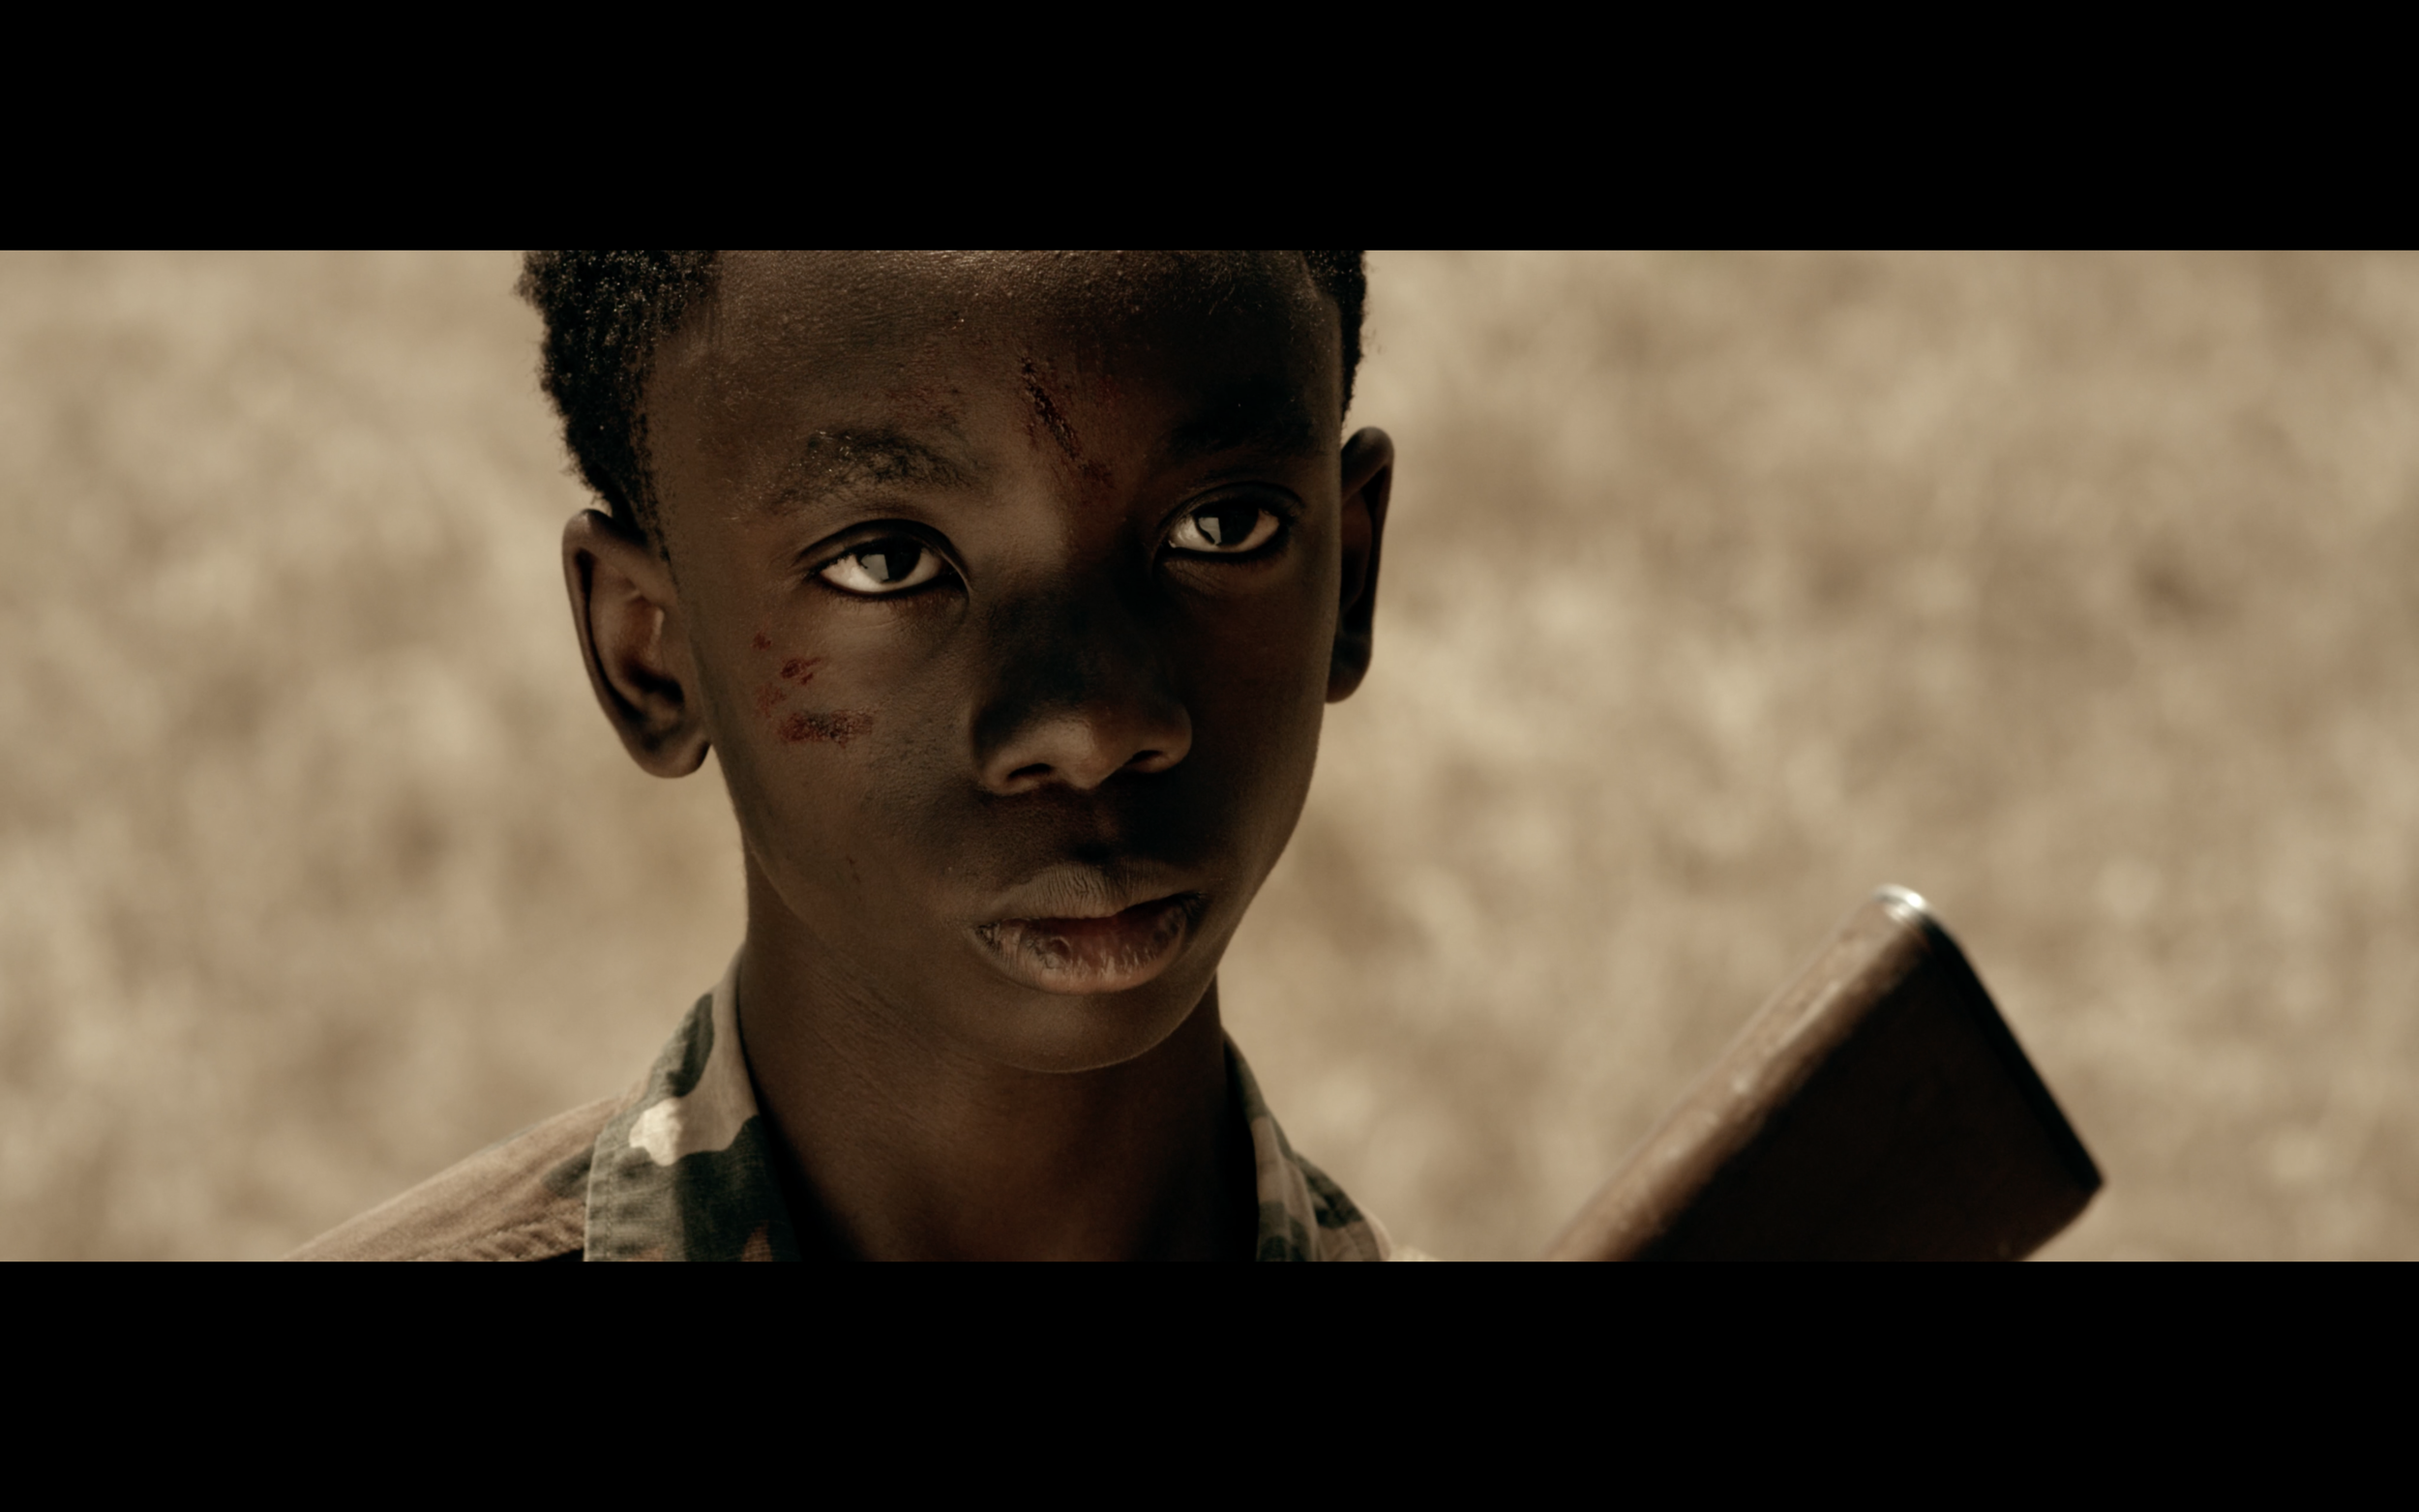 Born in Battle Yangzom Brauen | 2015 | USA | 20' | Drama | English   Born In Battle tells the story of a former child soldier. Oneka, 12 years old, has escaped the clutches of the rebel soldiers. In order to overcome his past, he creates himself a fantasy world, far away from his oppressive life circumstances. The life he is looking for disappears the more he tries to capture it. Born In Battle has won several awards at the Fribourg International Film Festival. Yangzom Brauen directed and wrote the script.